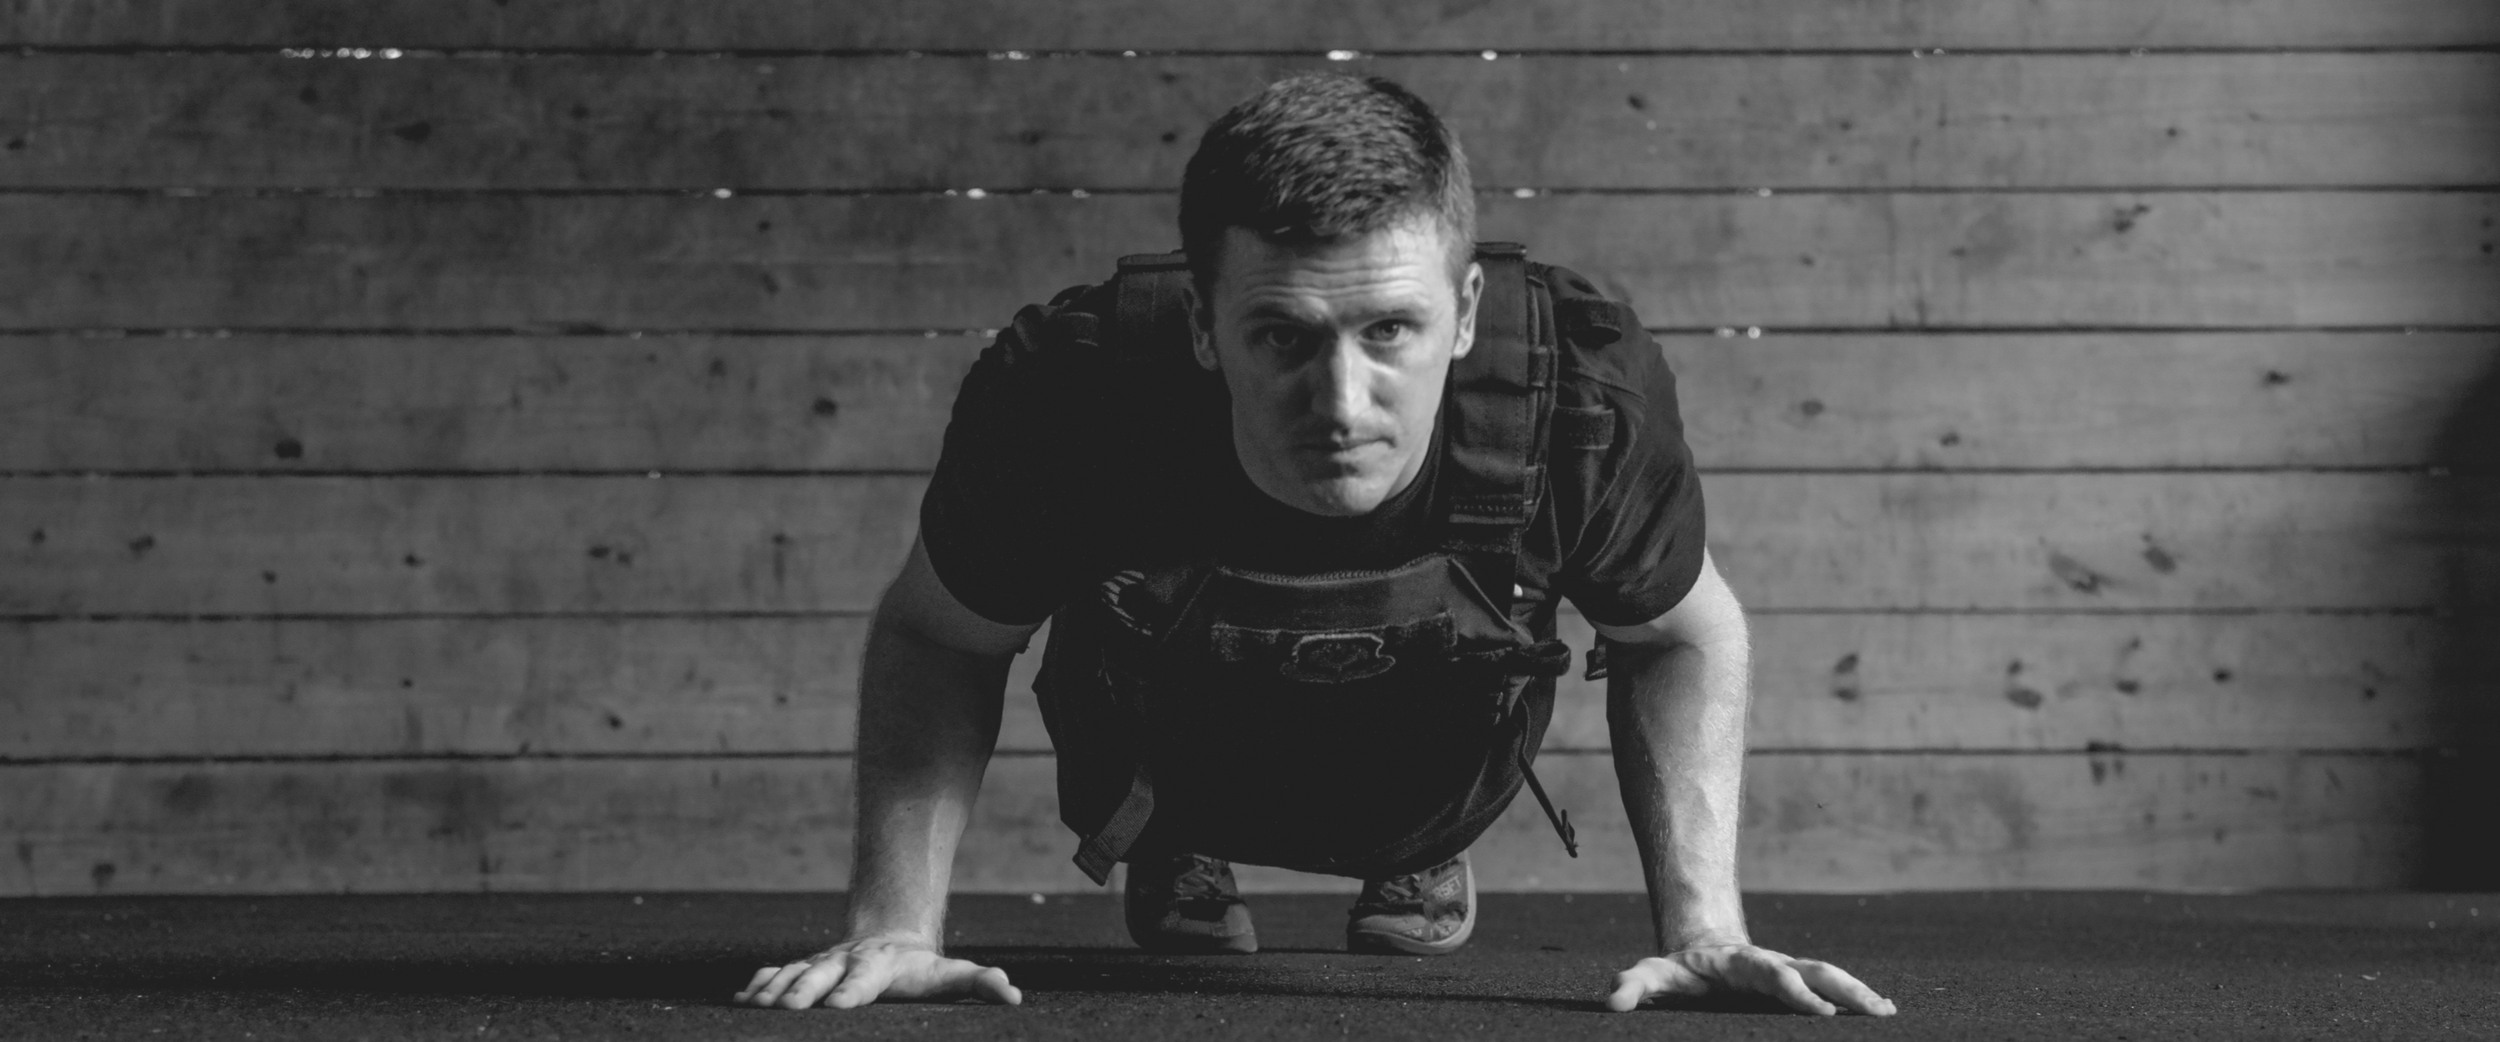 NO GEAR - For Athletes Looking to Improve Their Fitness Through Bodyweight-Only Training